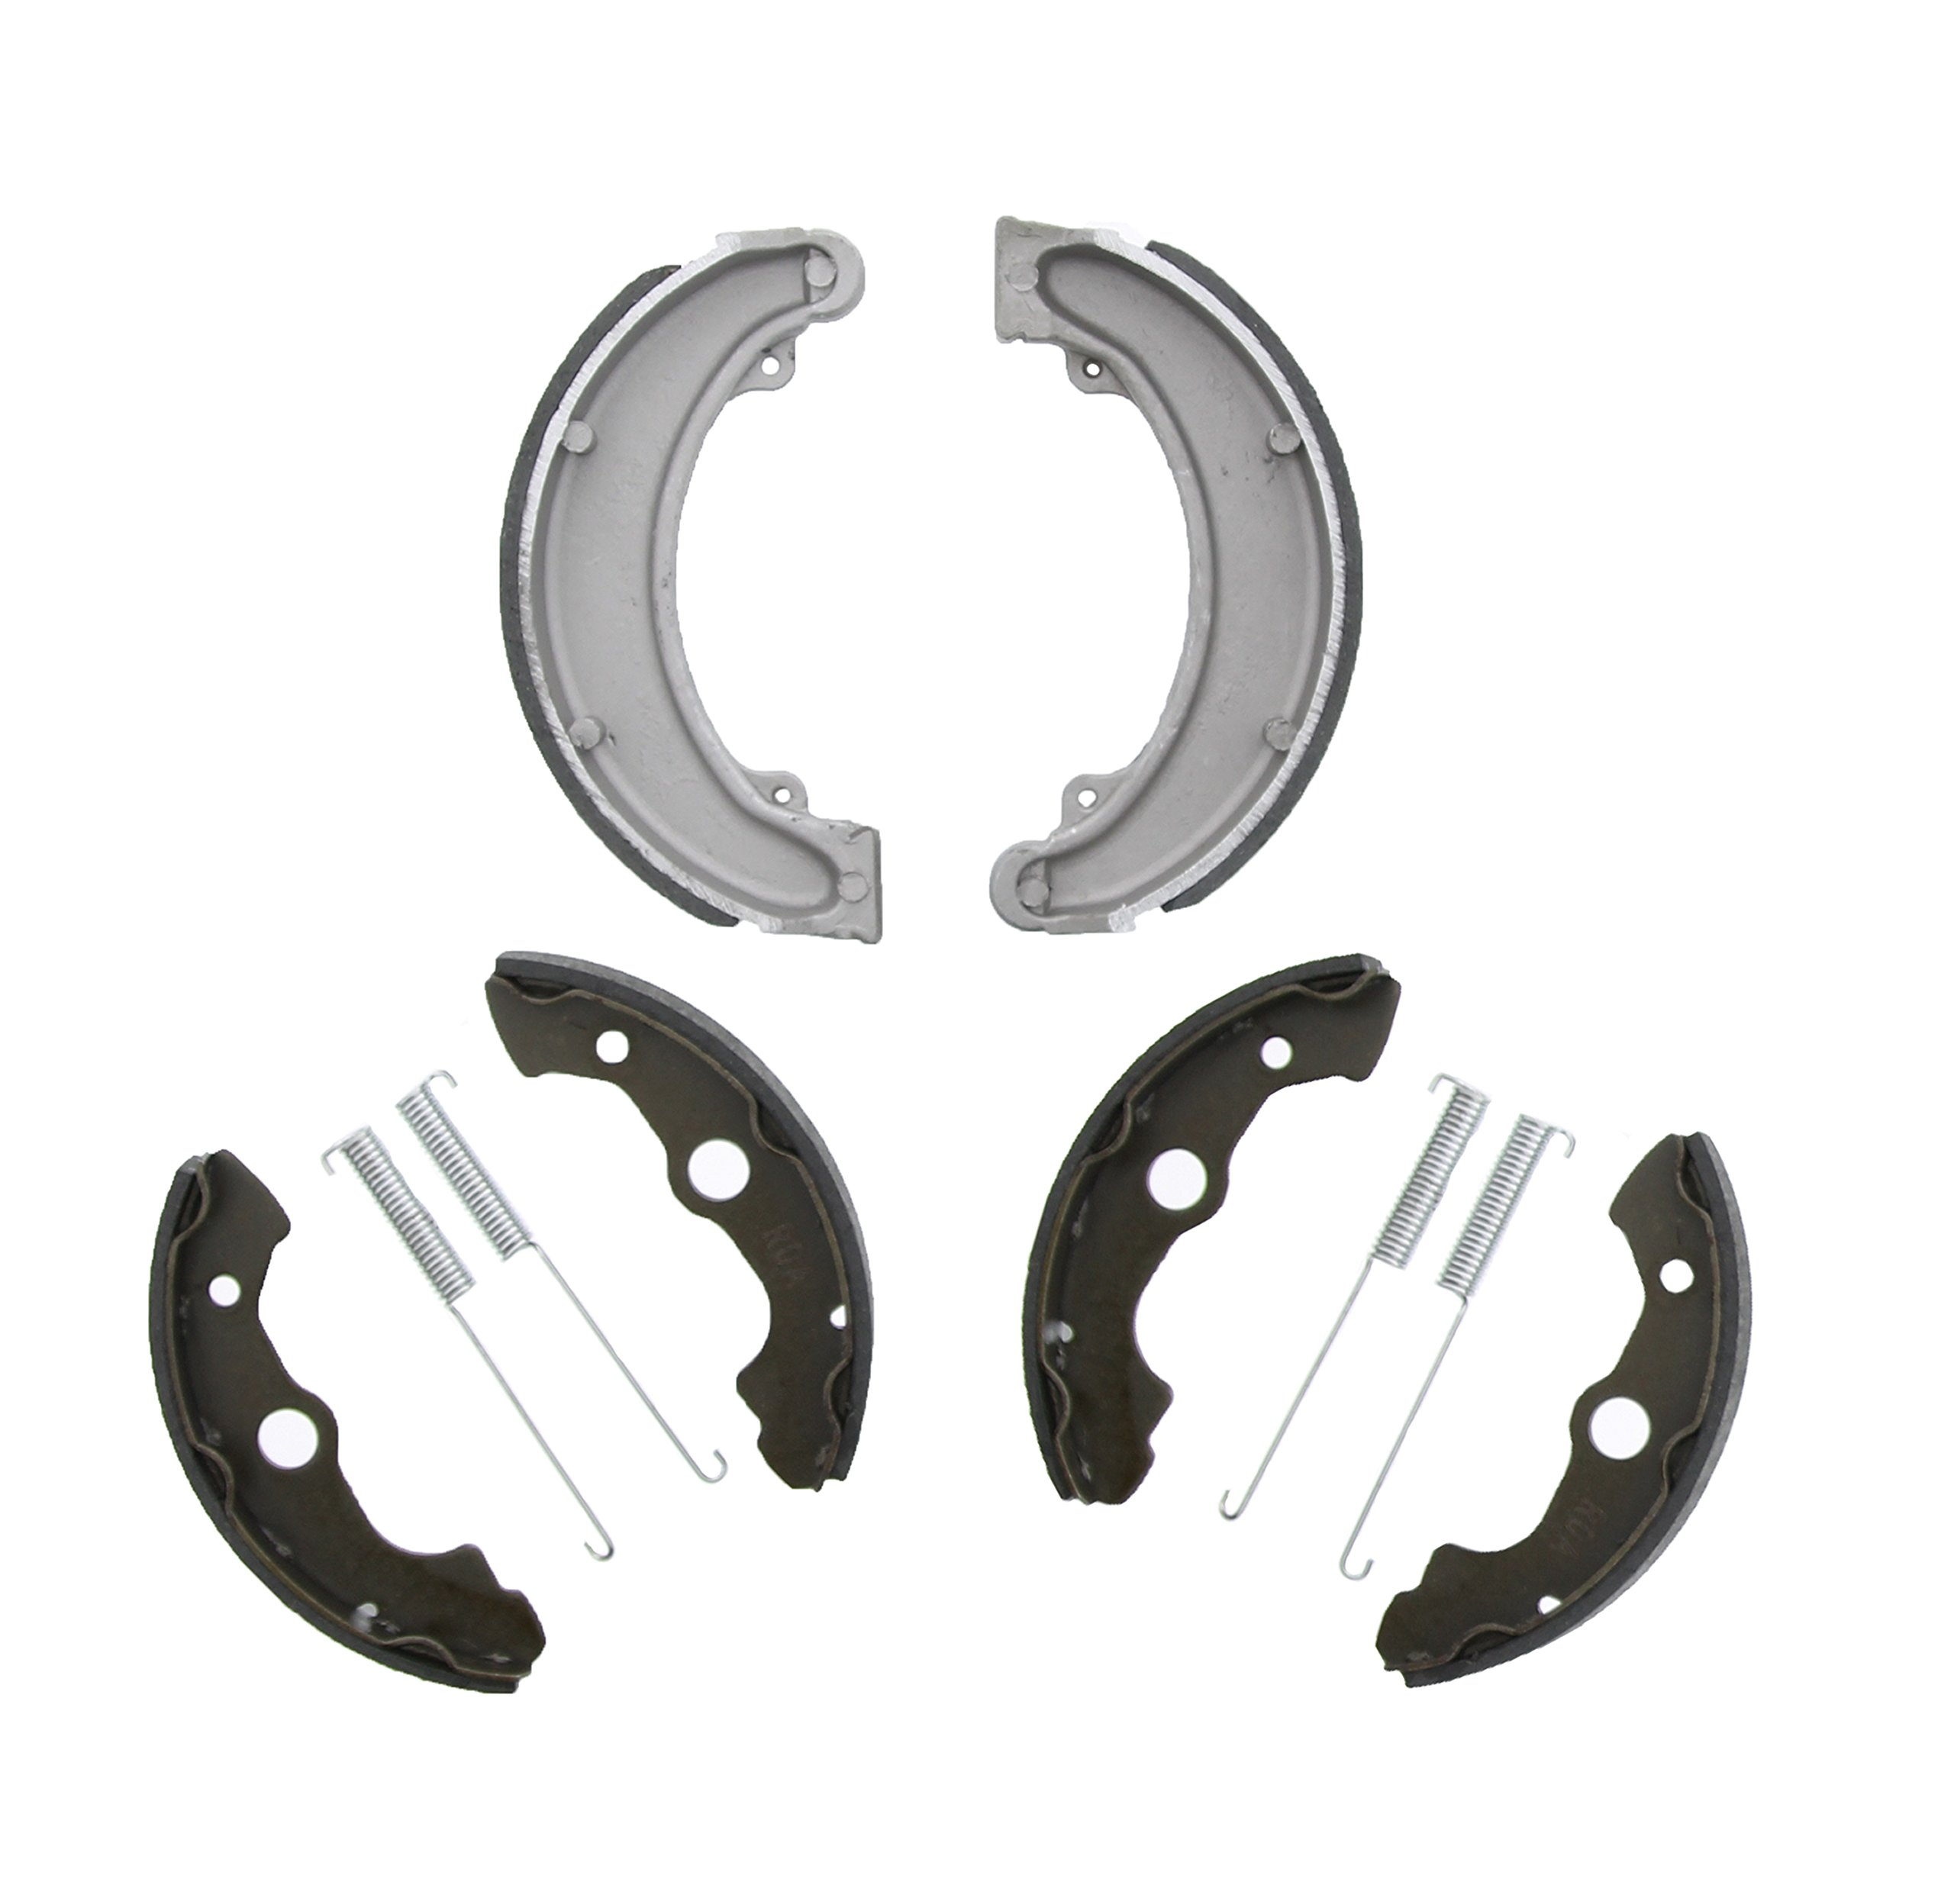 Race Driven OEM Replacement Front and Rear Brake Shoes Brakes for Honda FourTrax 300 TRX300 TRX300FW by Race-Driven